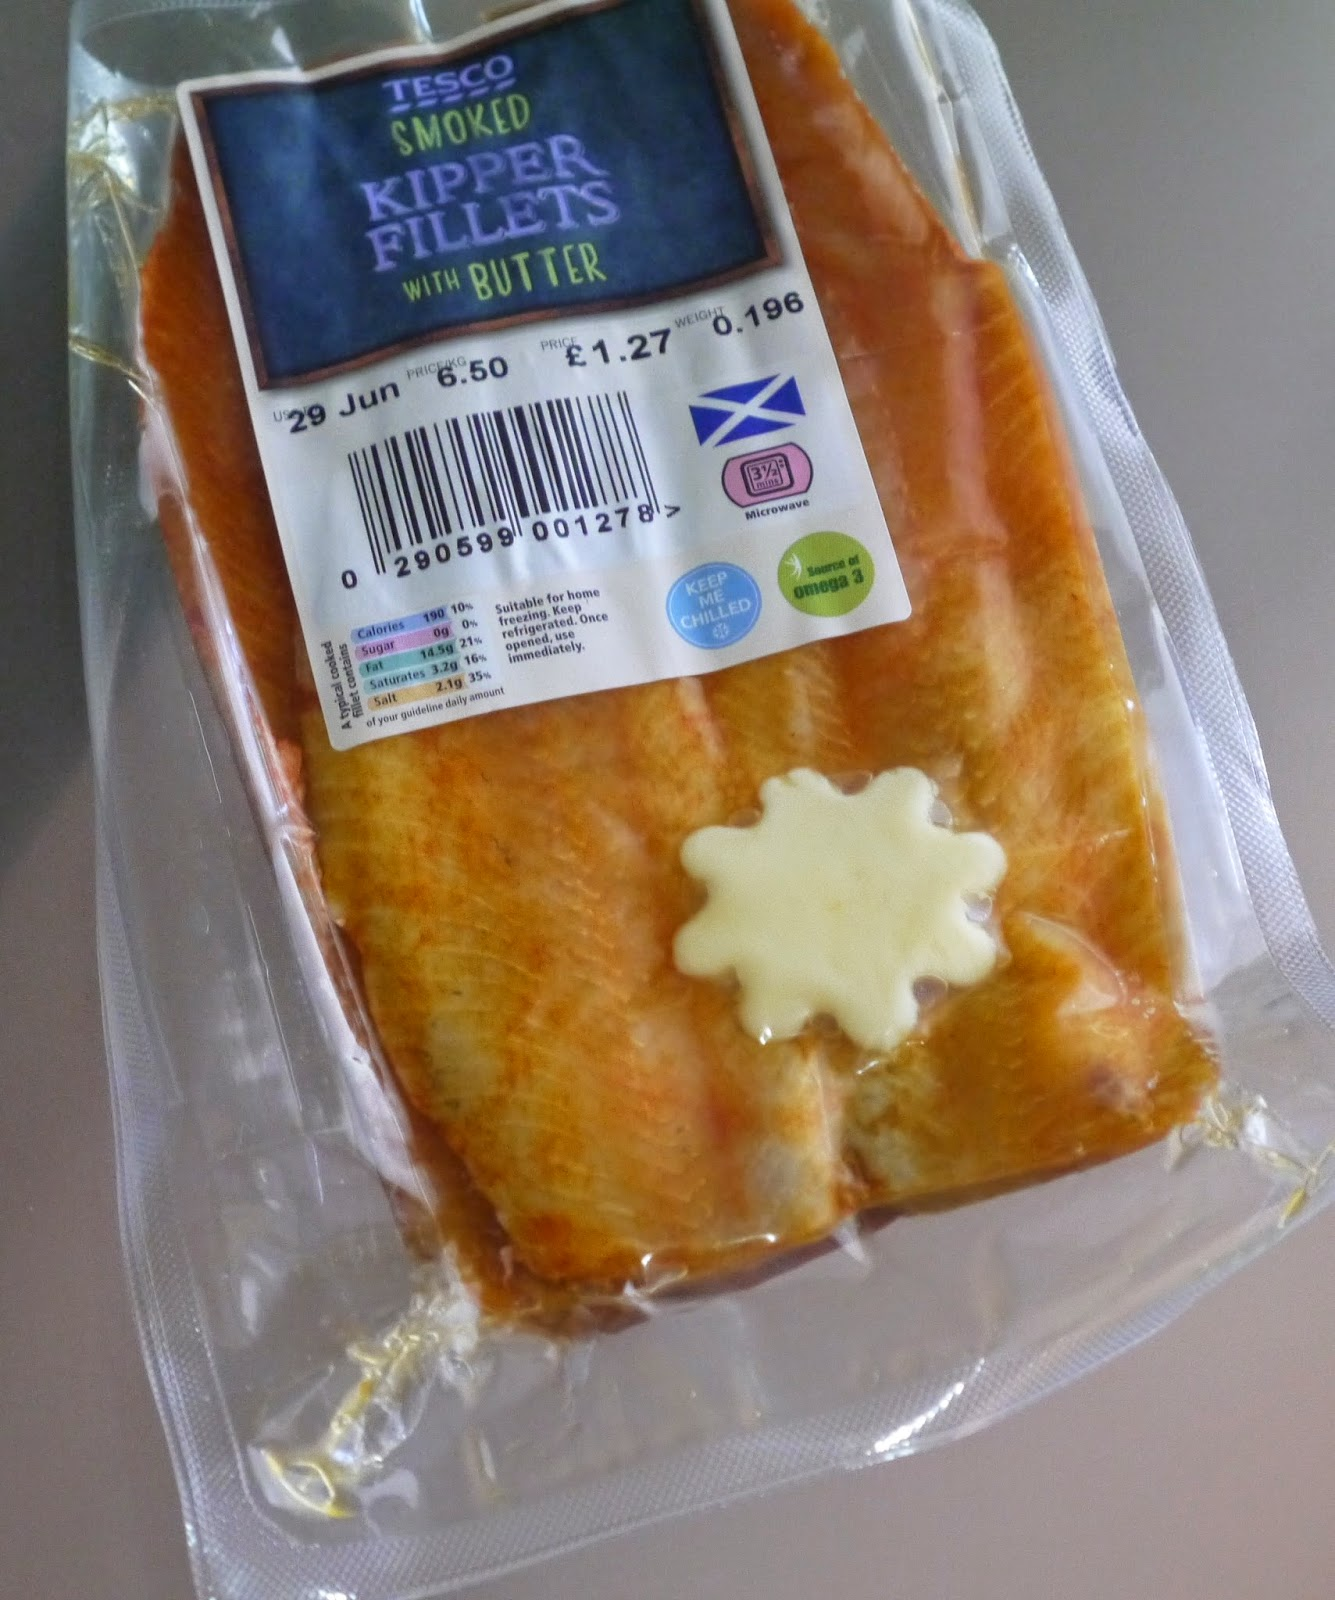 Kippers delivered to your door, from the Isle of Man